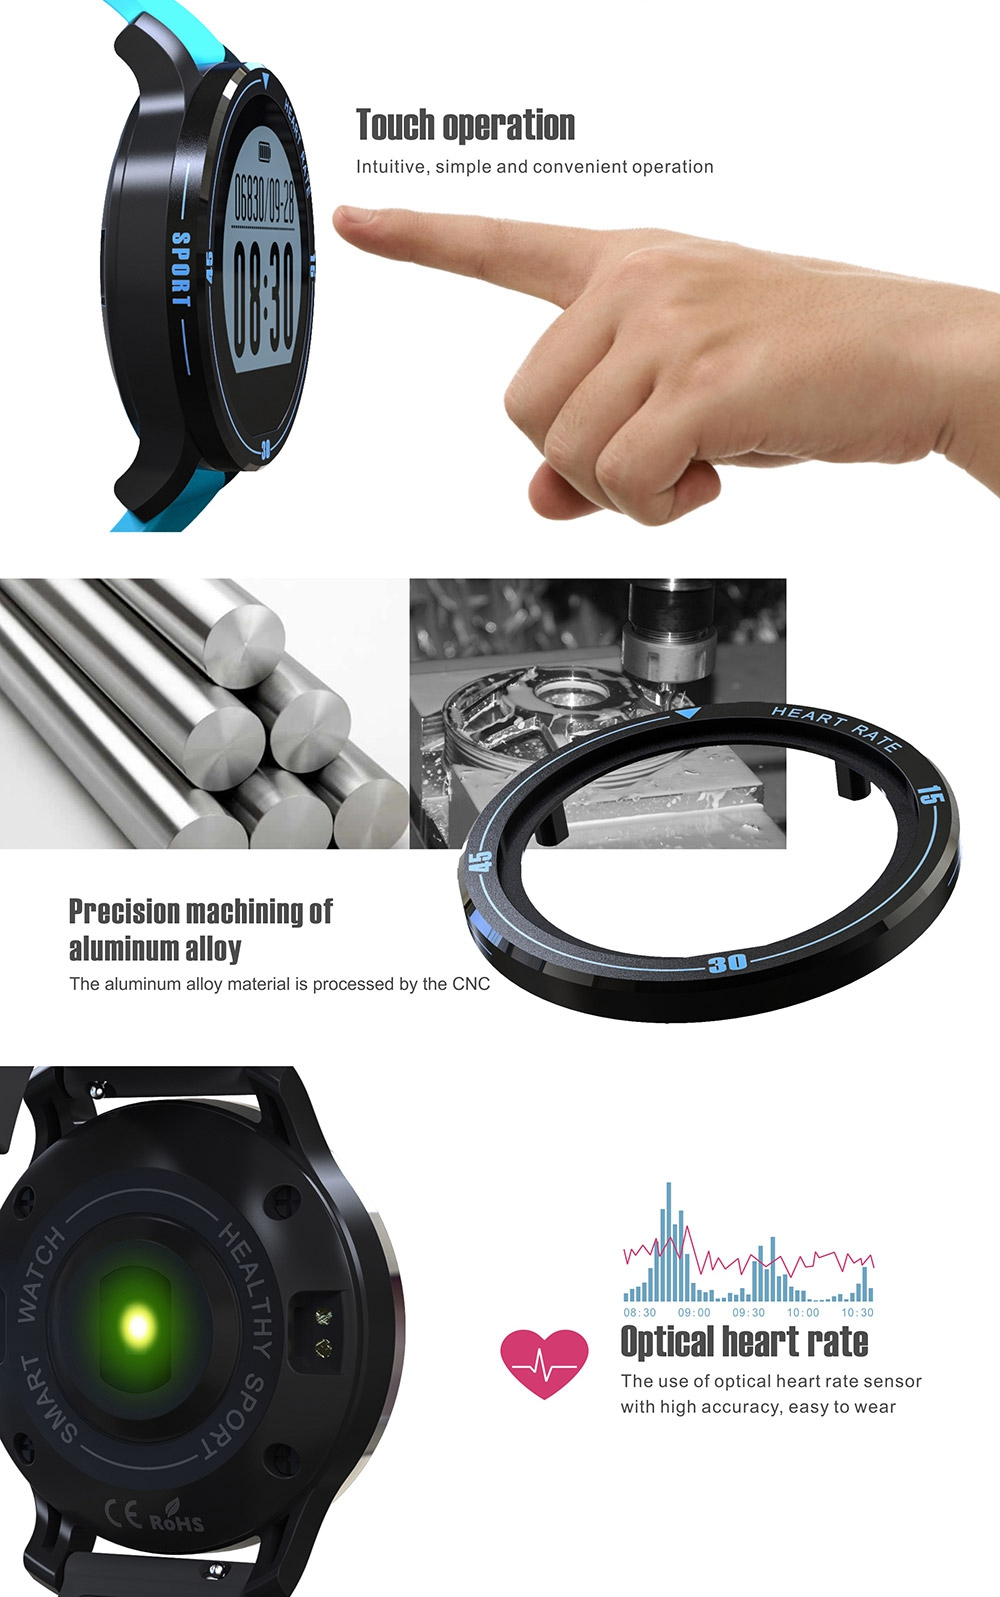 MAKIBES AEROBIC A1 SMART SPORTS WATCH BLUETOOTH DYNAMIC HEART RATE MONITOR SMARTWATCH S200 231407 20